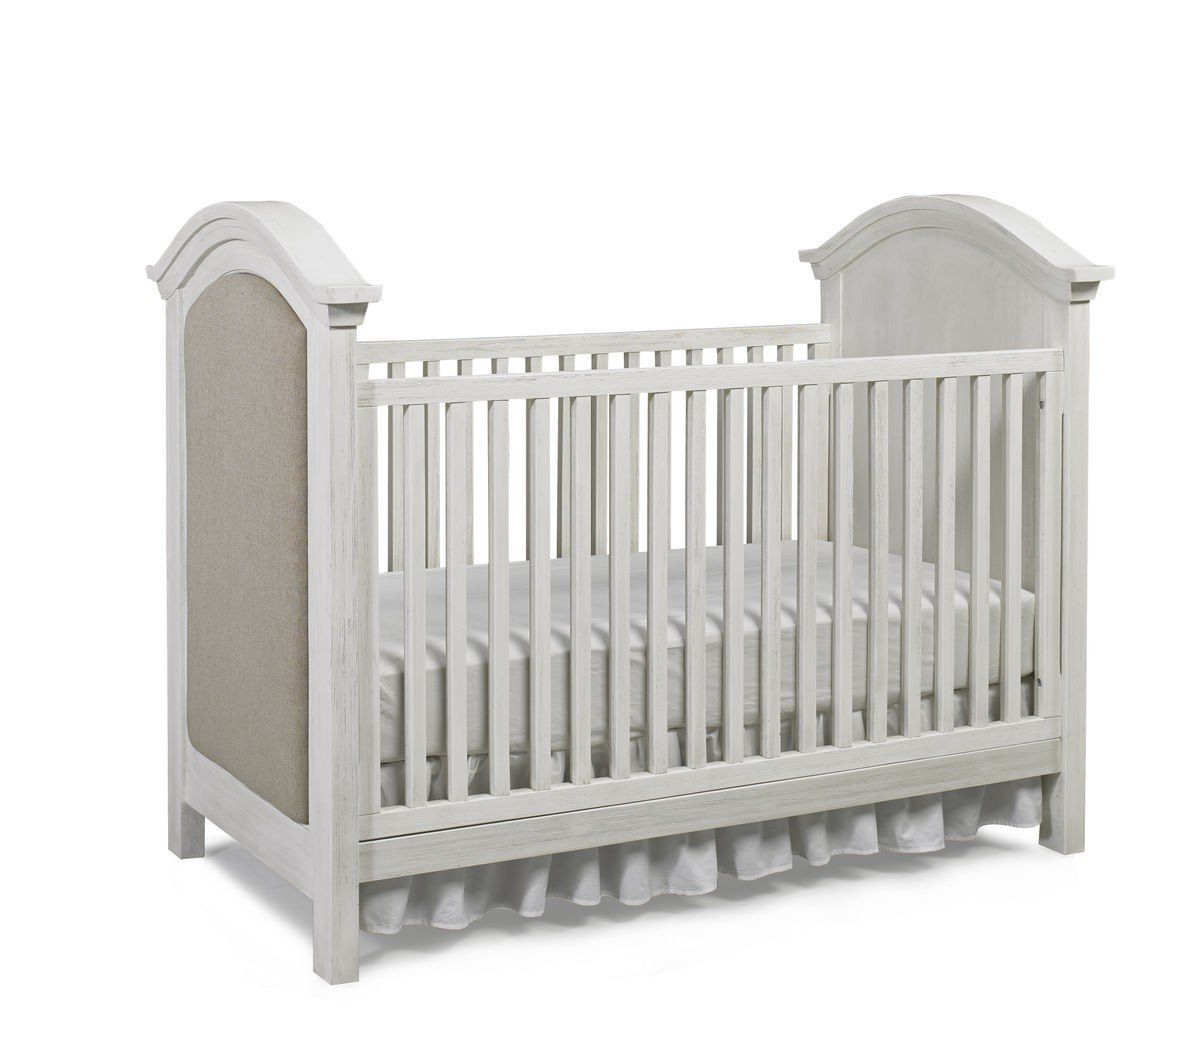 30 Baby Furniture Stores Houston Interior Design Bedroom Color Schemes Check More At Http Ww With Images Baby Furniture Stores Baby Nursery Furniture Houston Furniture